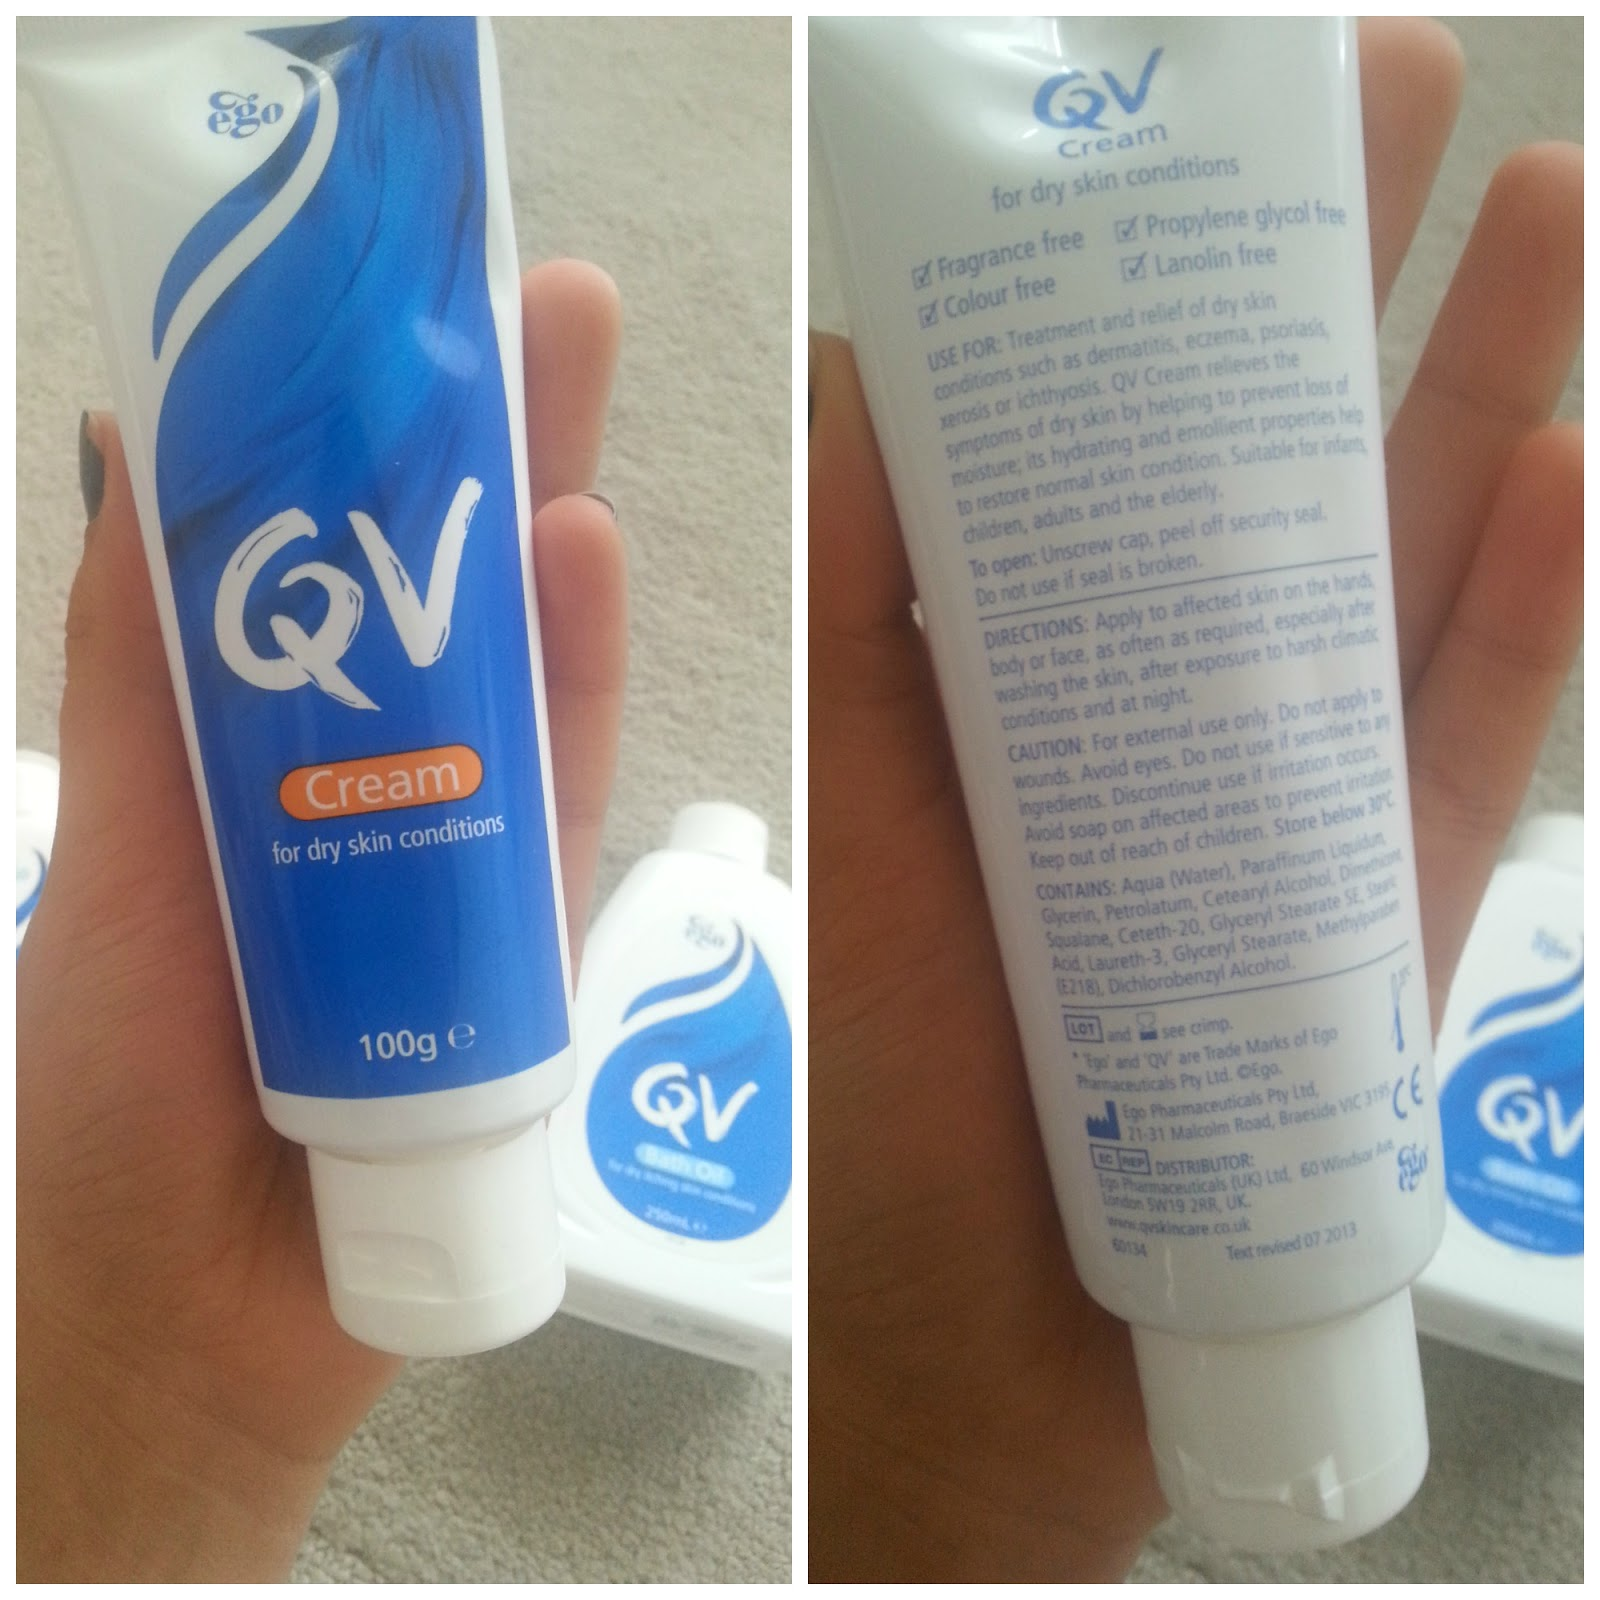 QV Skincare Cream, Bath Oil and Lotion